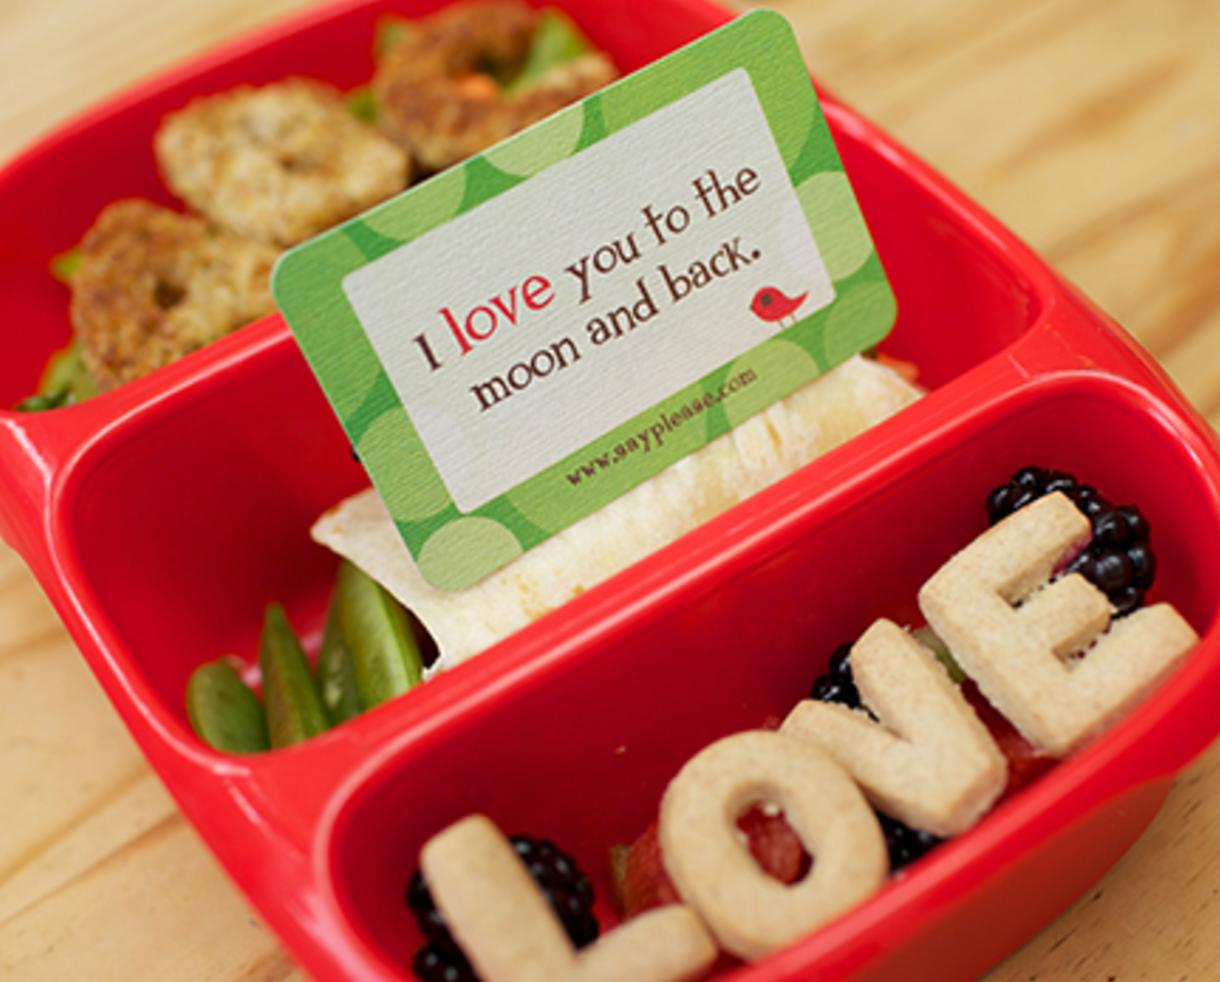 $12 for Half-Year of Creative Lunchbox Notes for Kids or $18 for Lunchbox Notes + Cool Design Sandwich Cutter (Up to 54% Off)